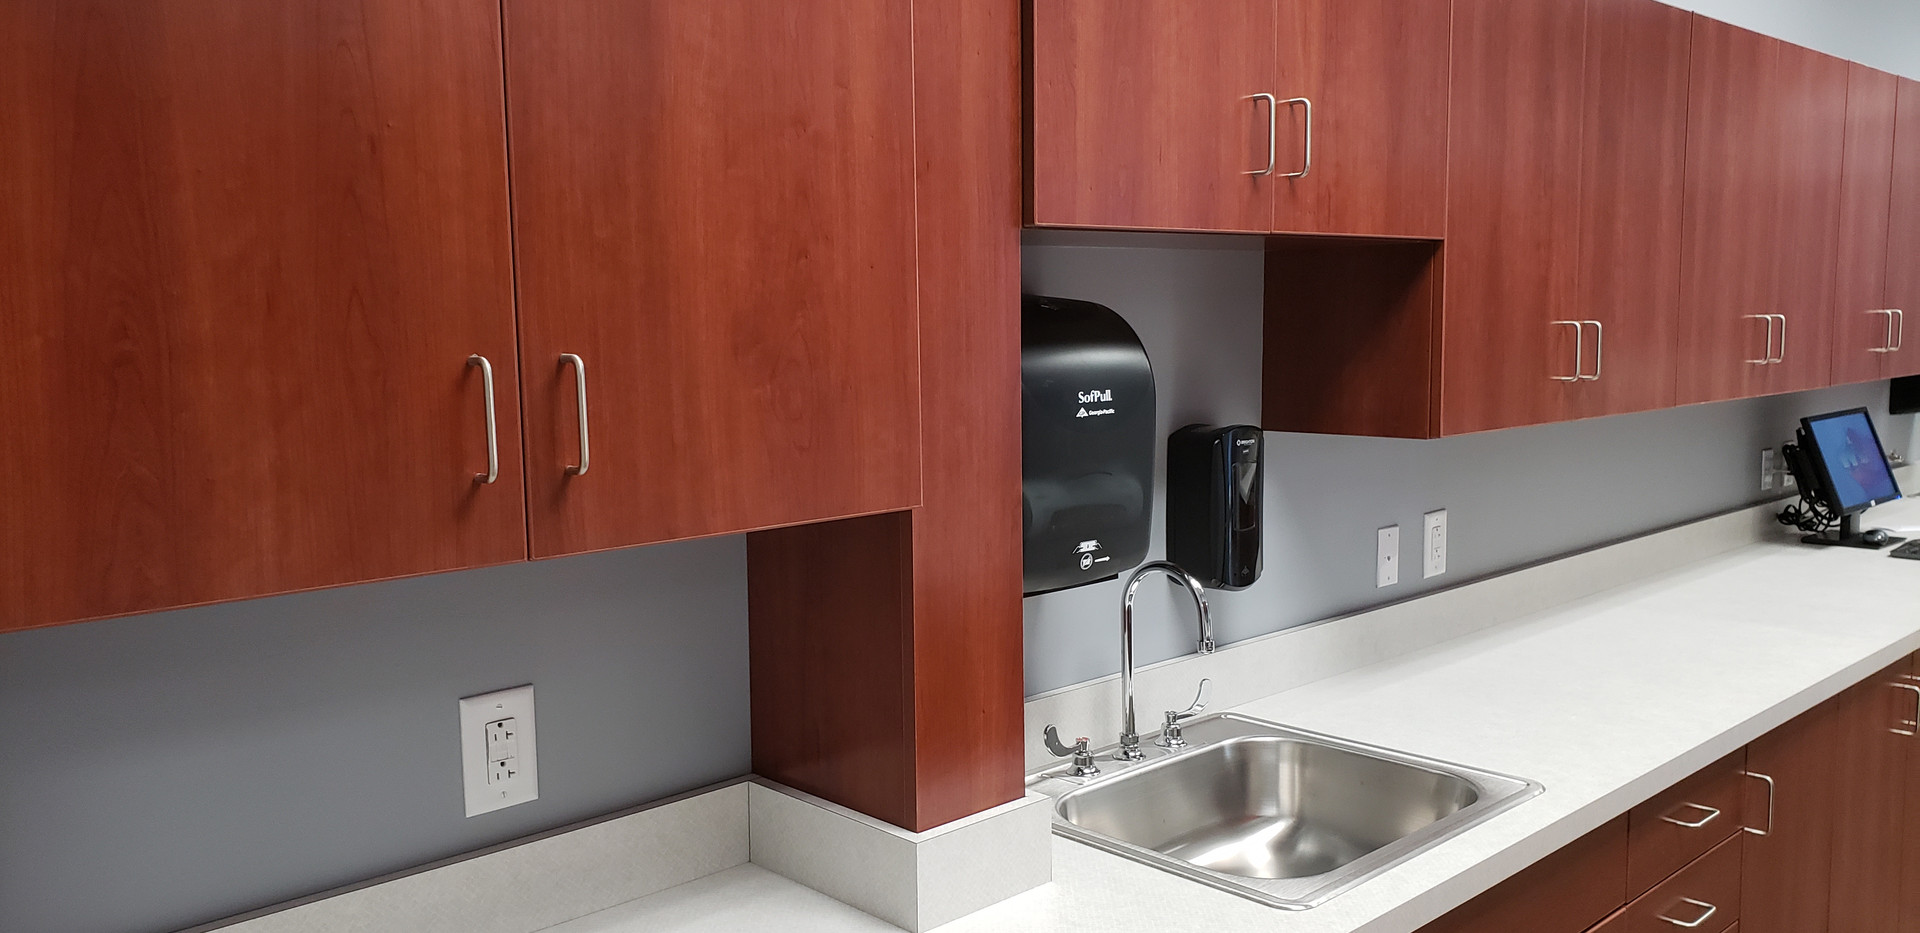 Handwashing Station with Counter Space - Buildout Pros